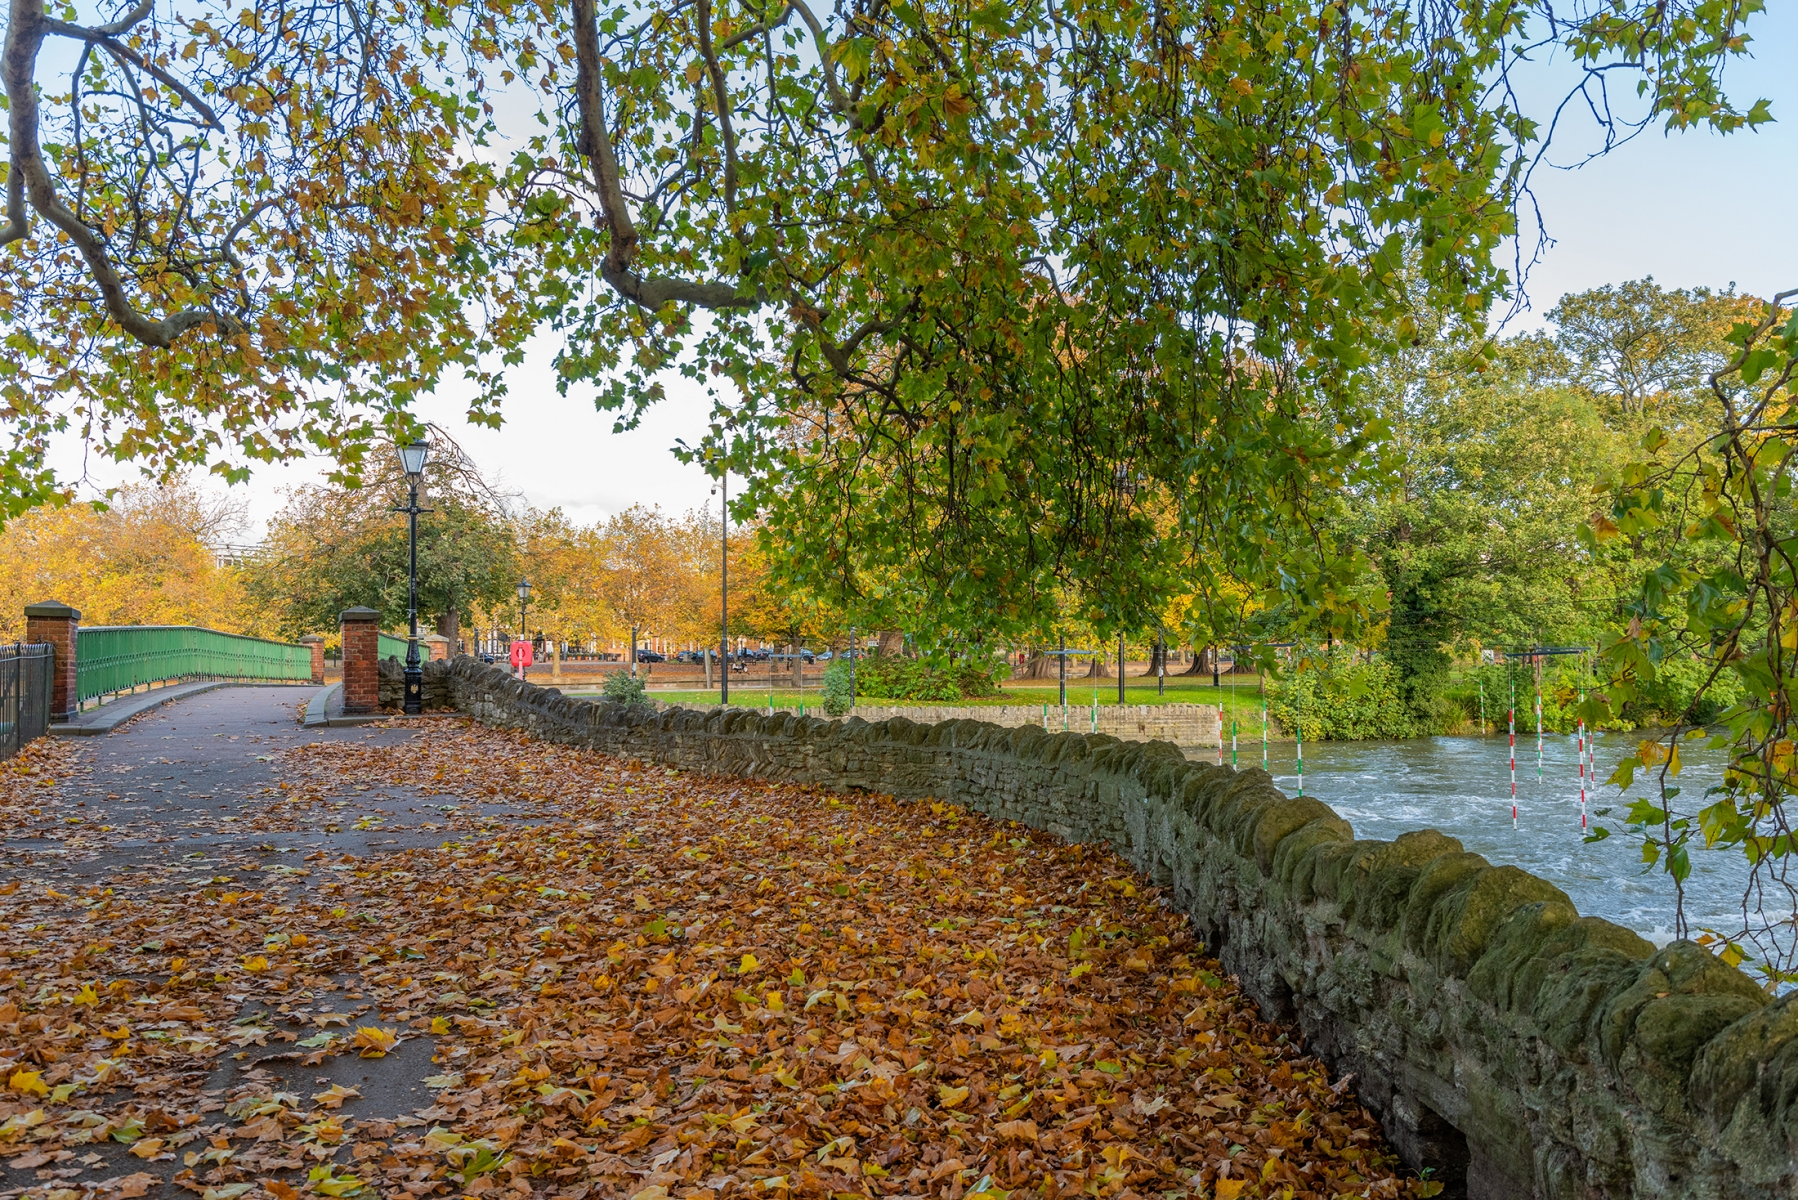 The Embankment, Bedford in Autumn